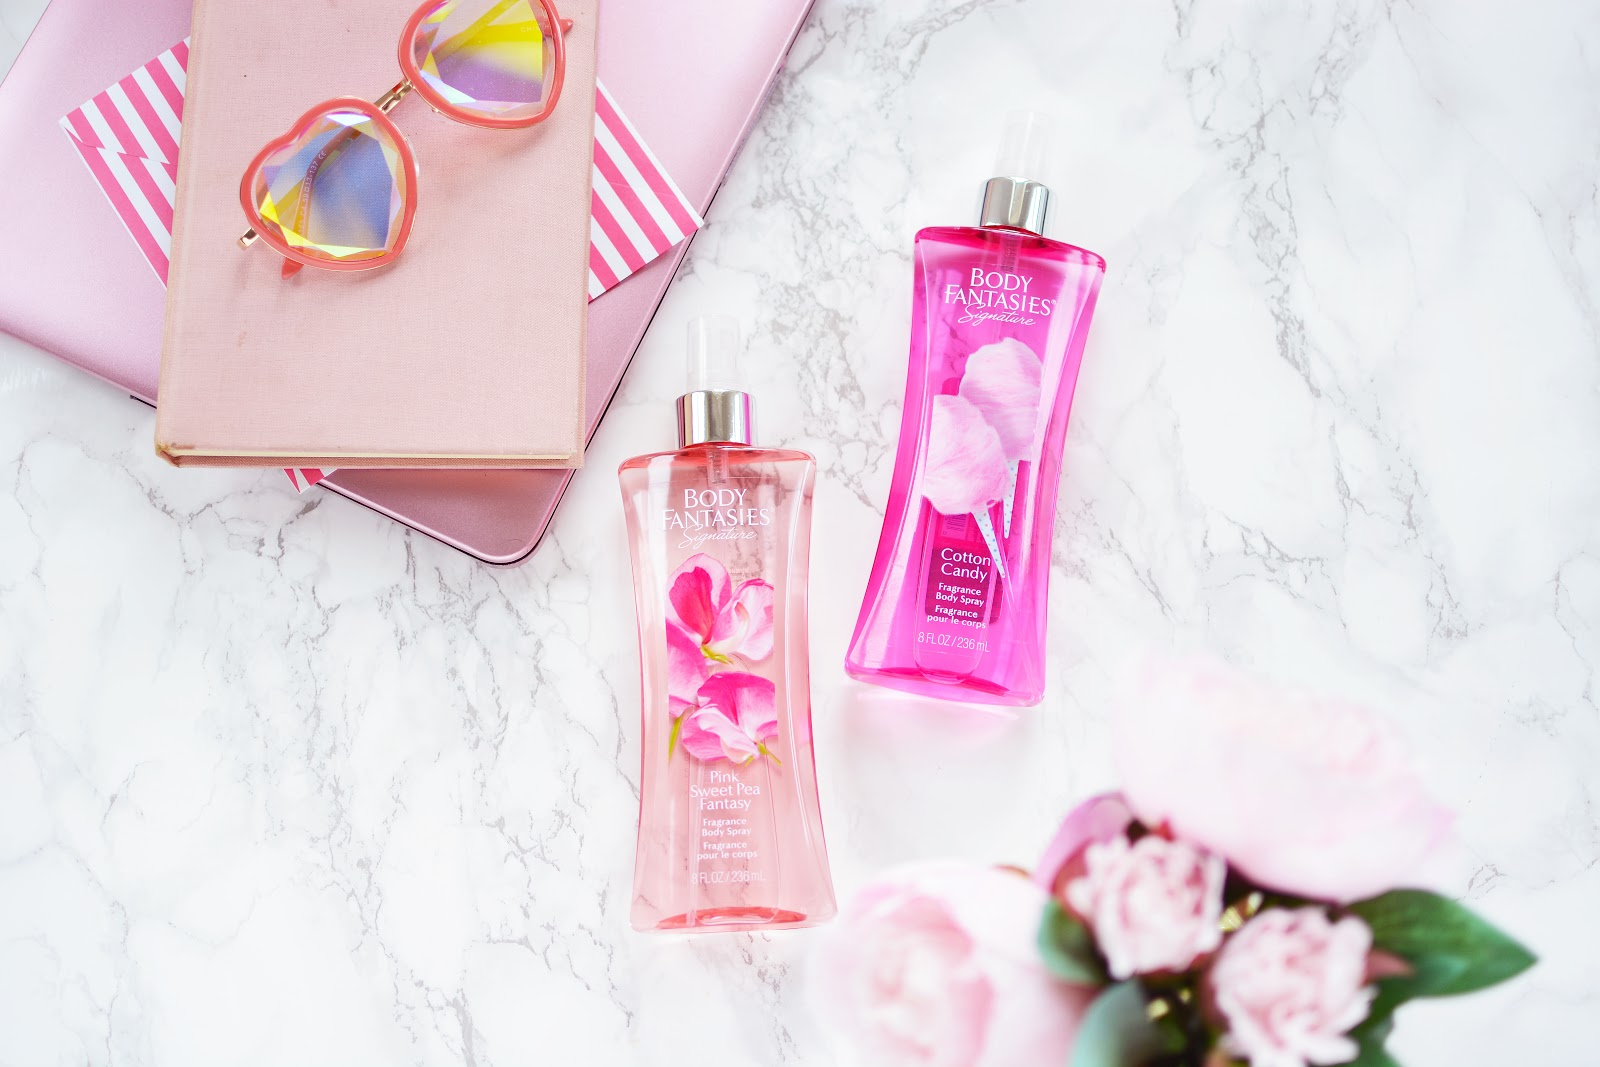 body fantasies body mists, body fantasies cotton candy